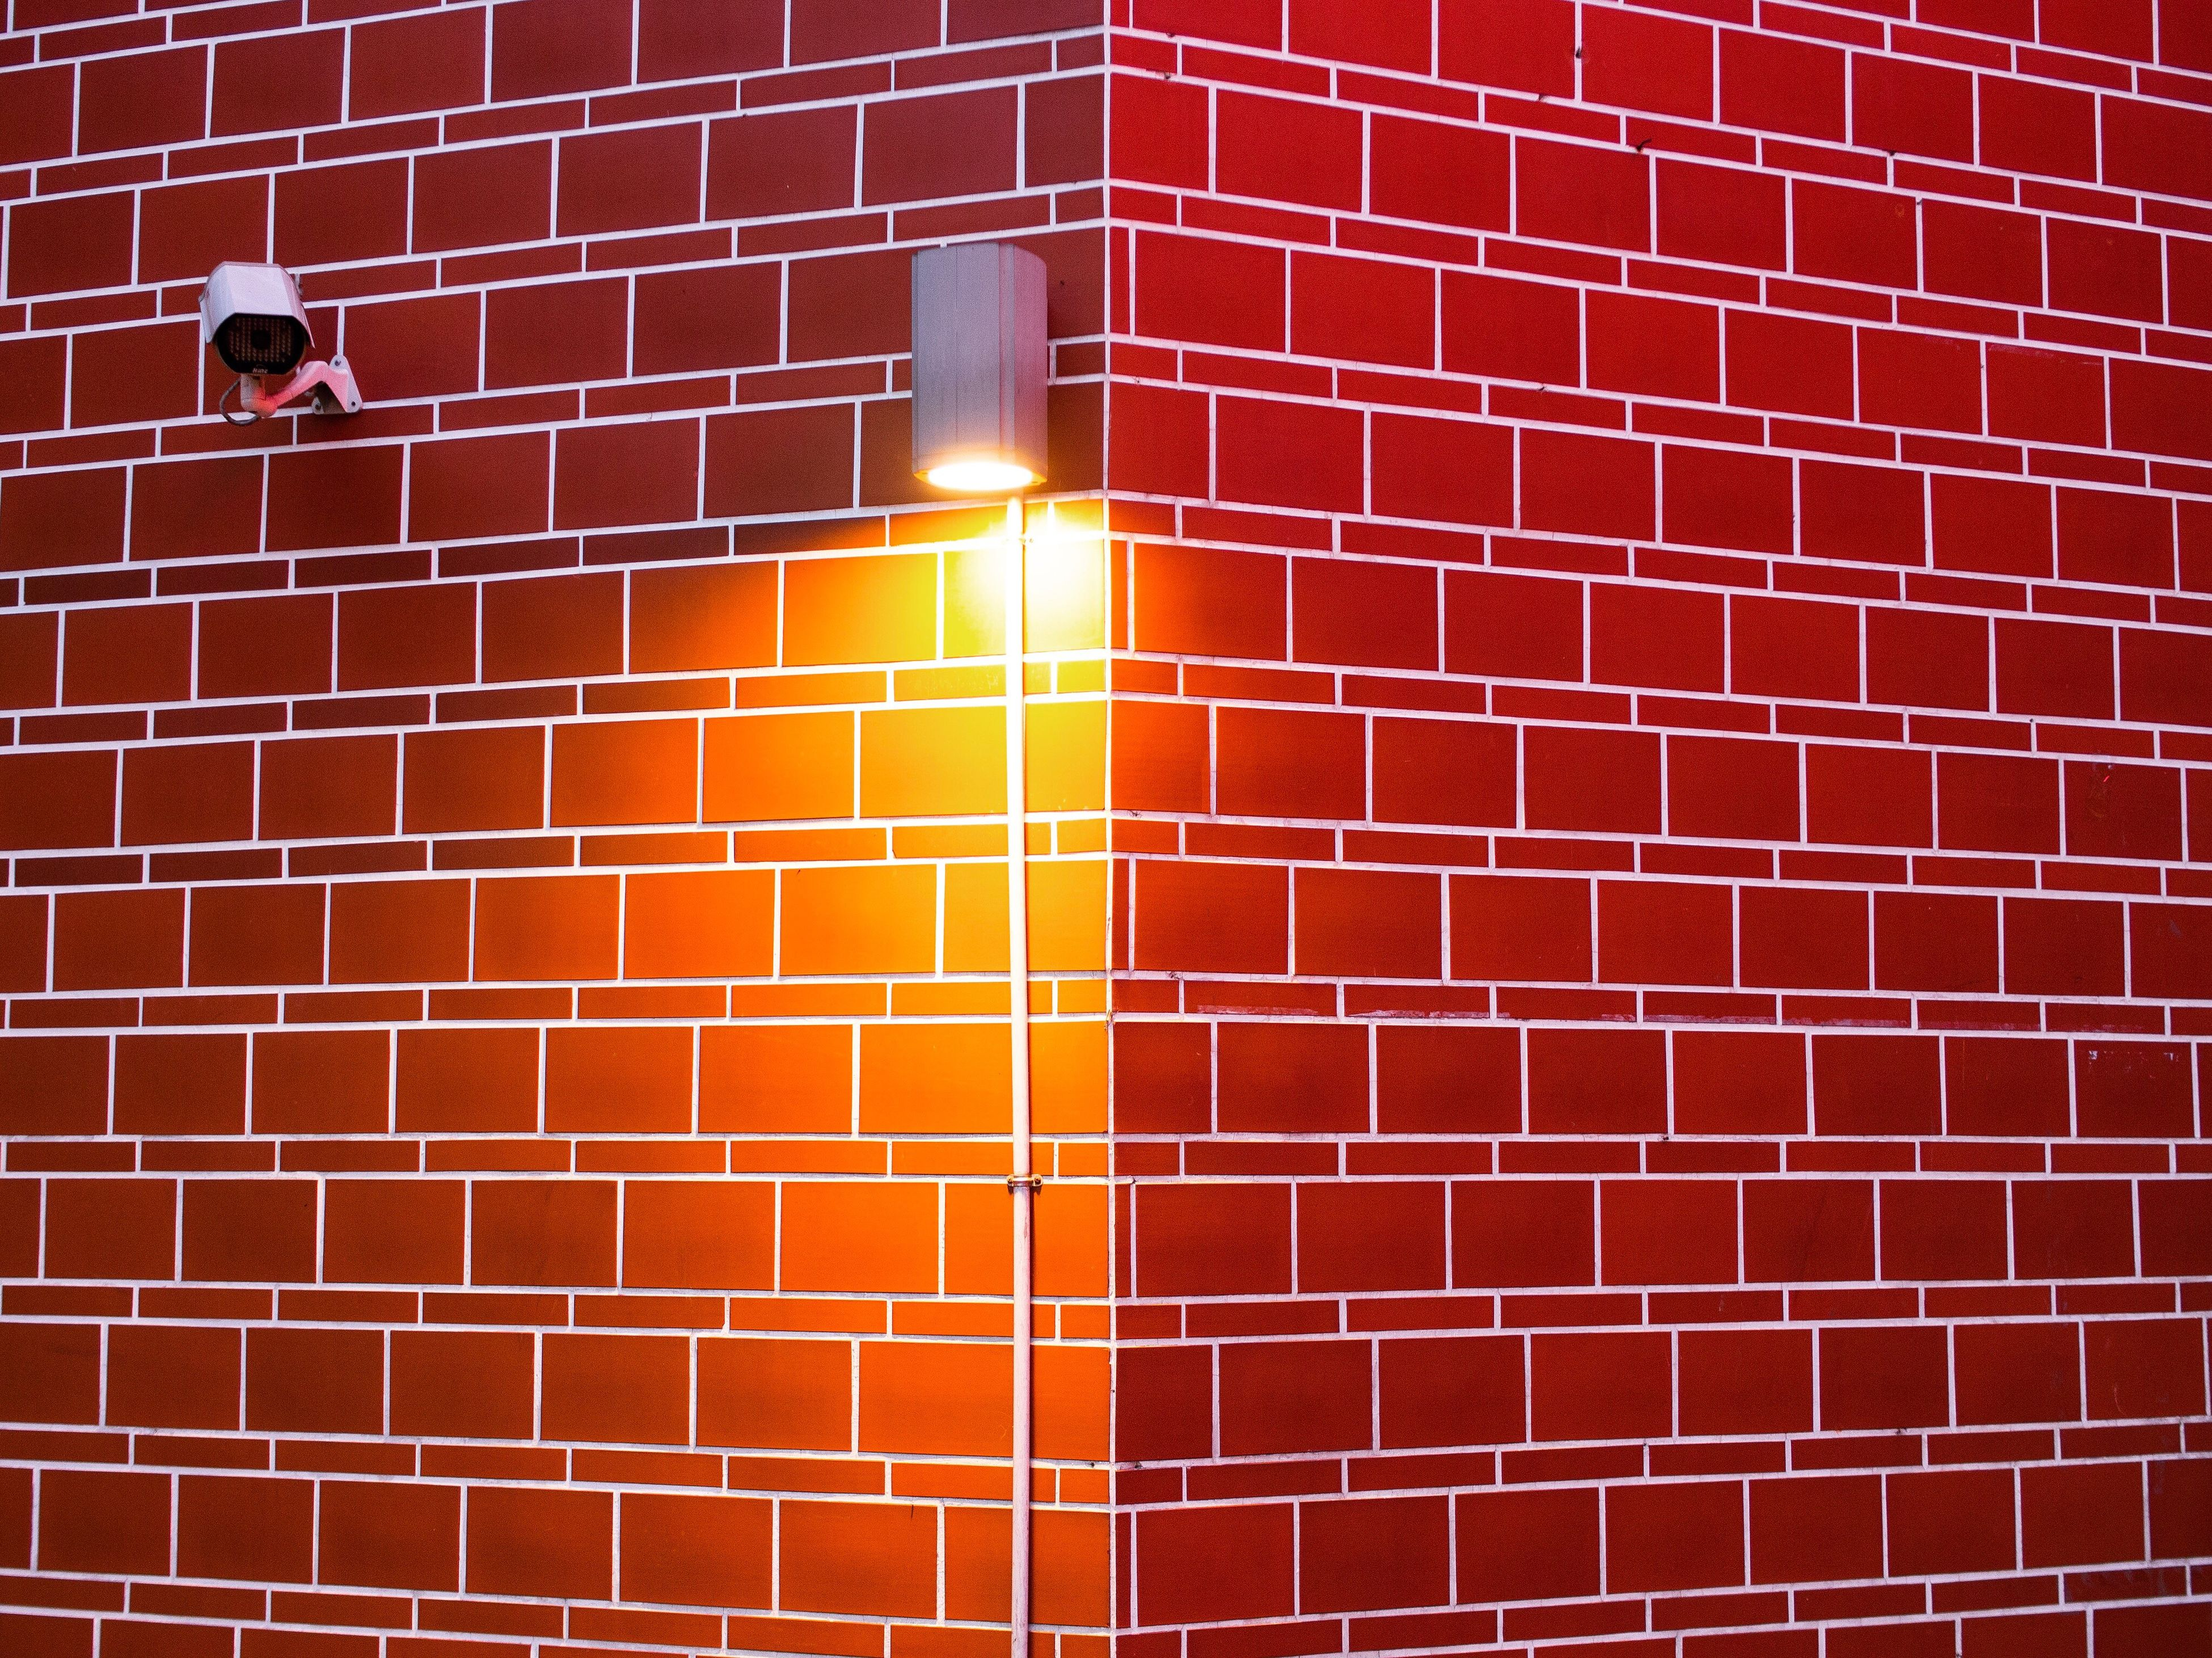 brick wall, wall - building feature, architecture, building exterior, built structure, outdoors, no people, day, close-up